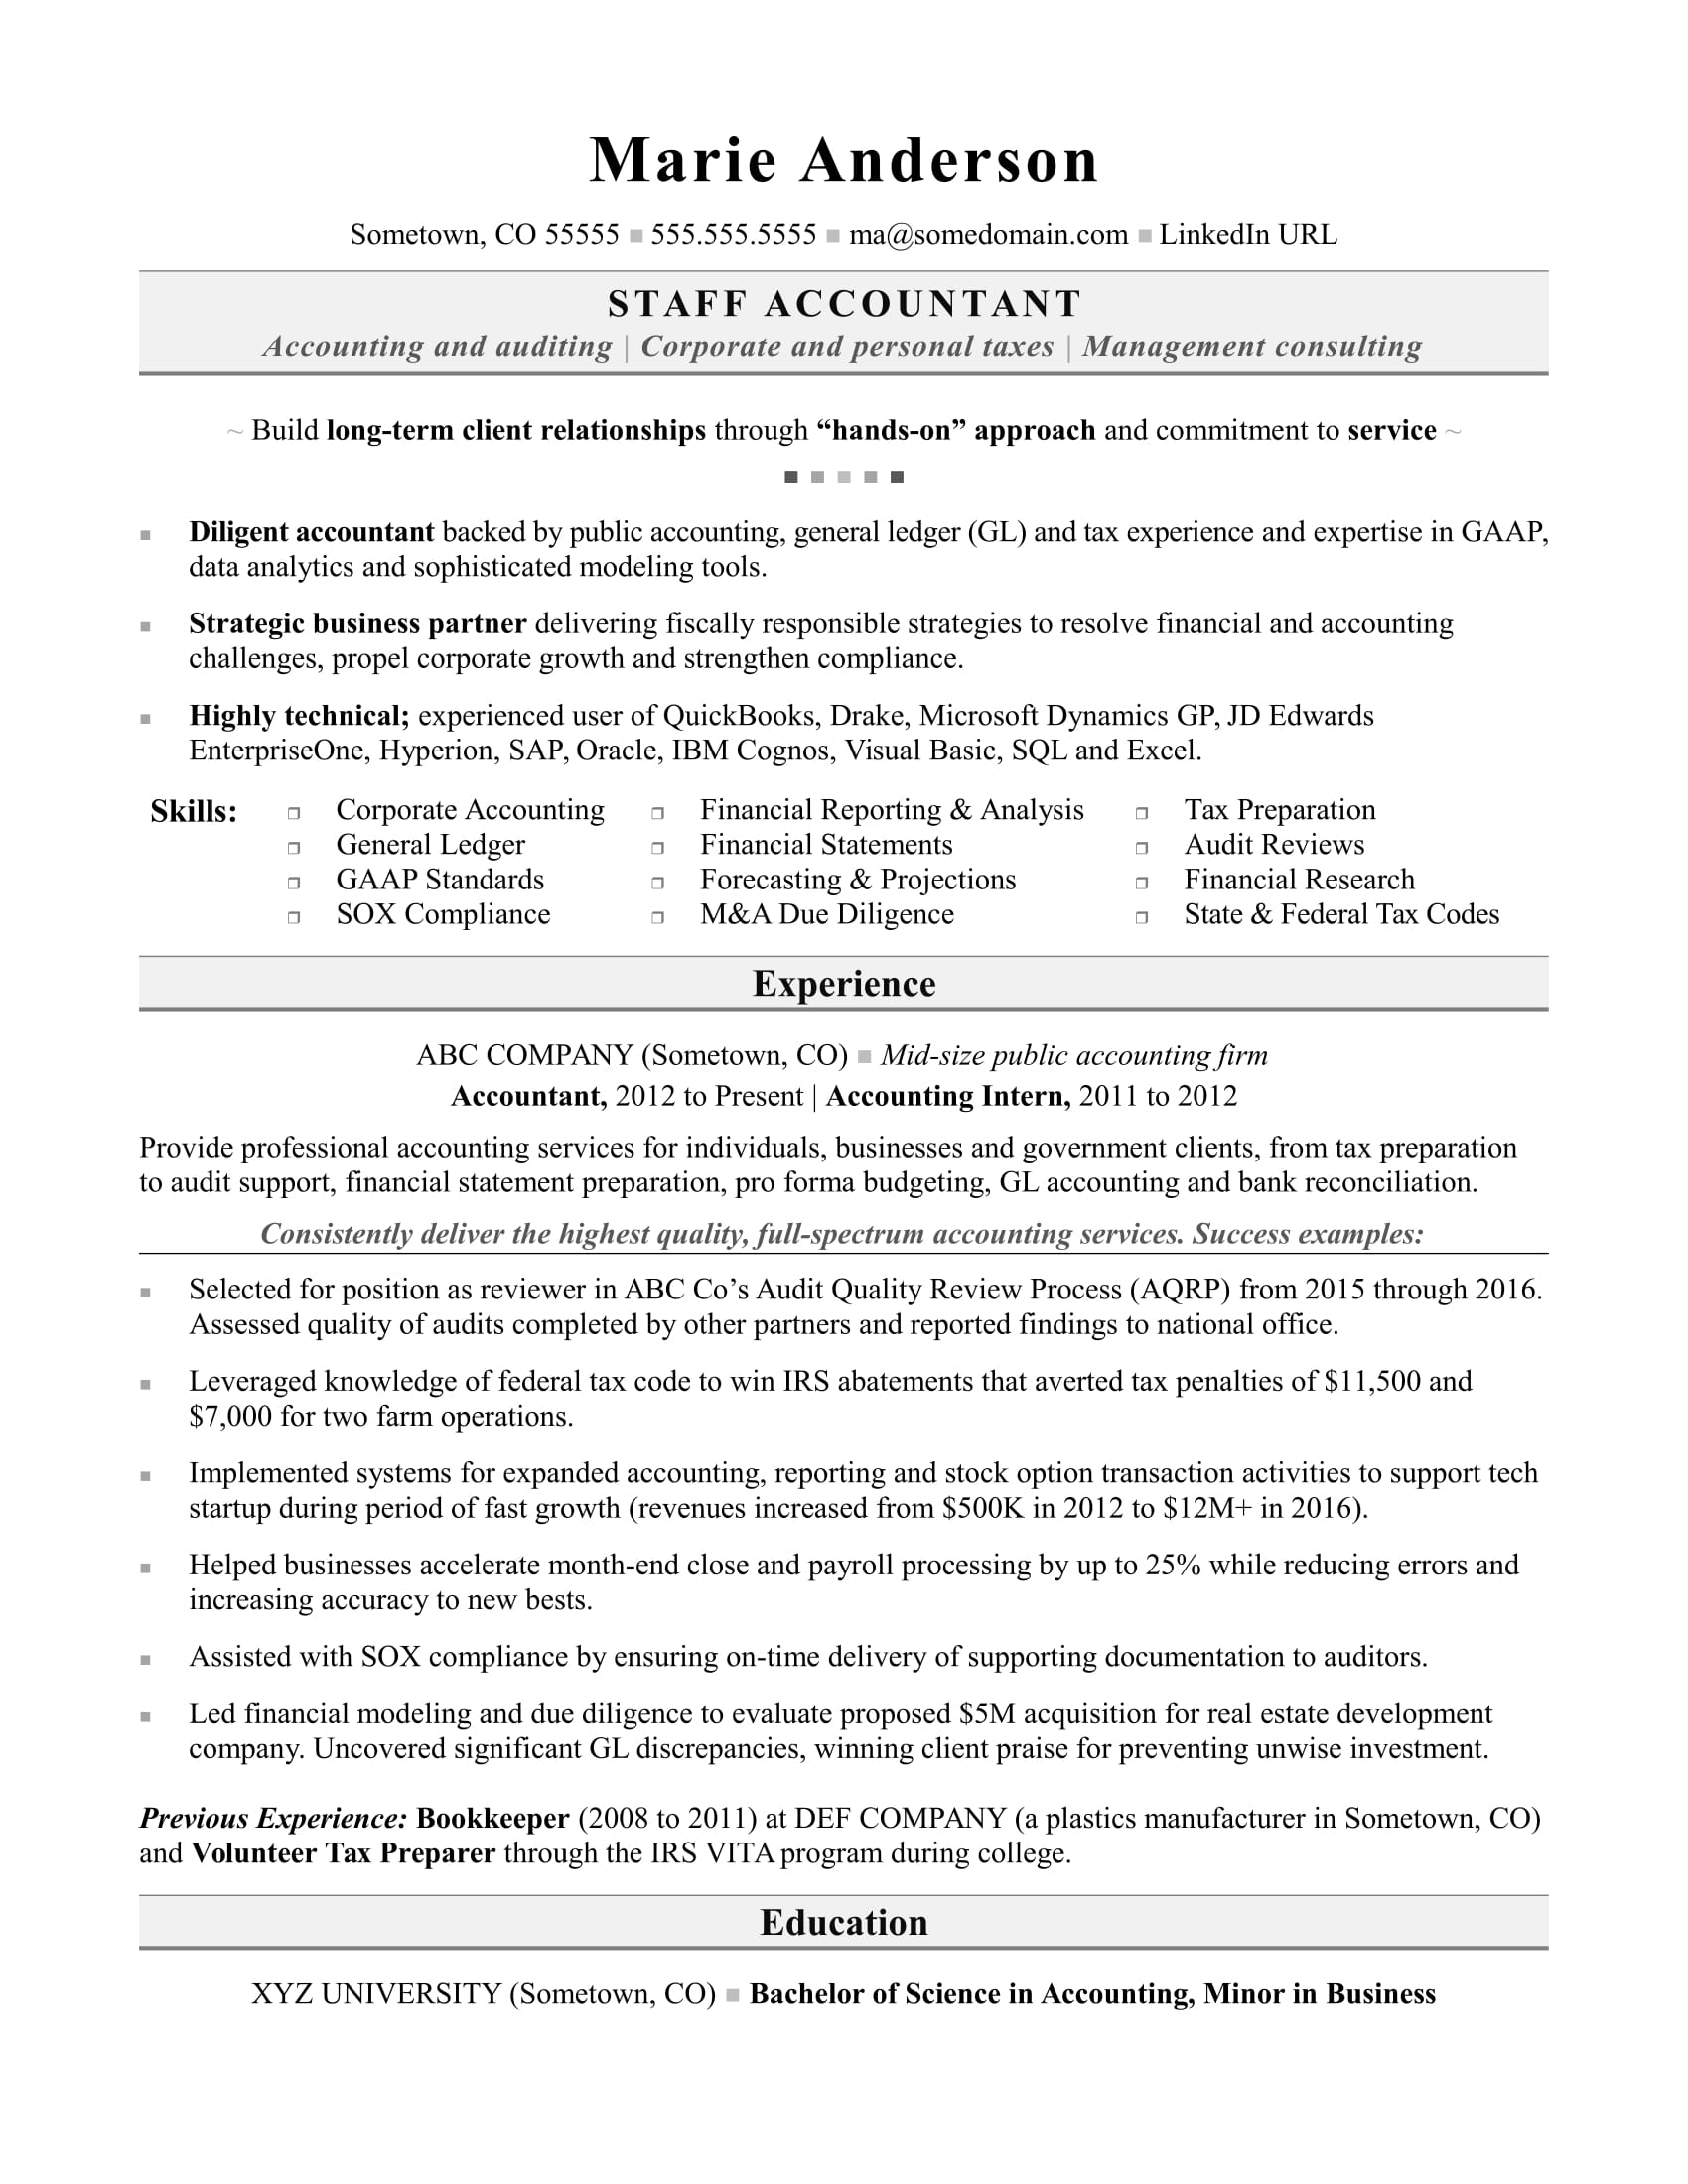 accounting resume sample monster examples accountant entry level fashion stylist senior Resume Accounting Resume Examples 2016